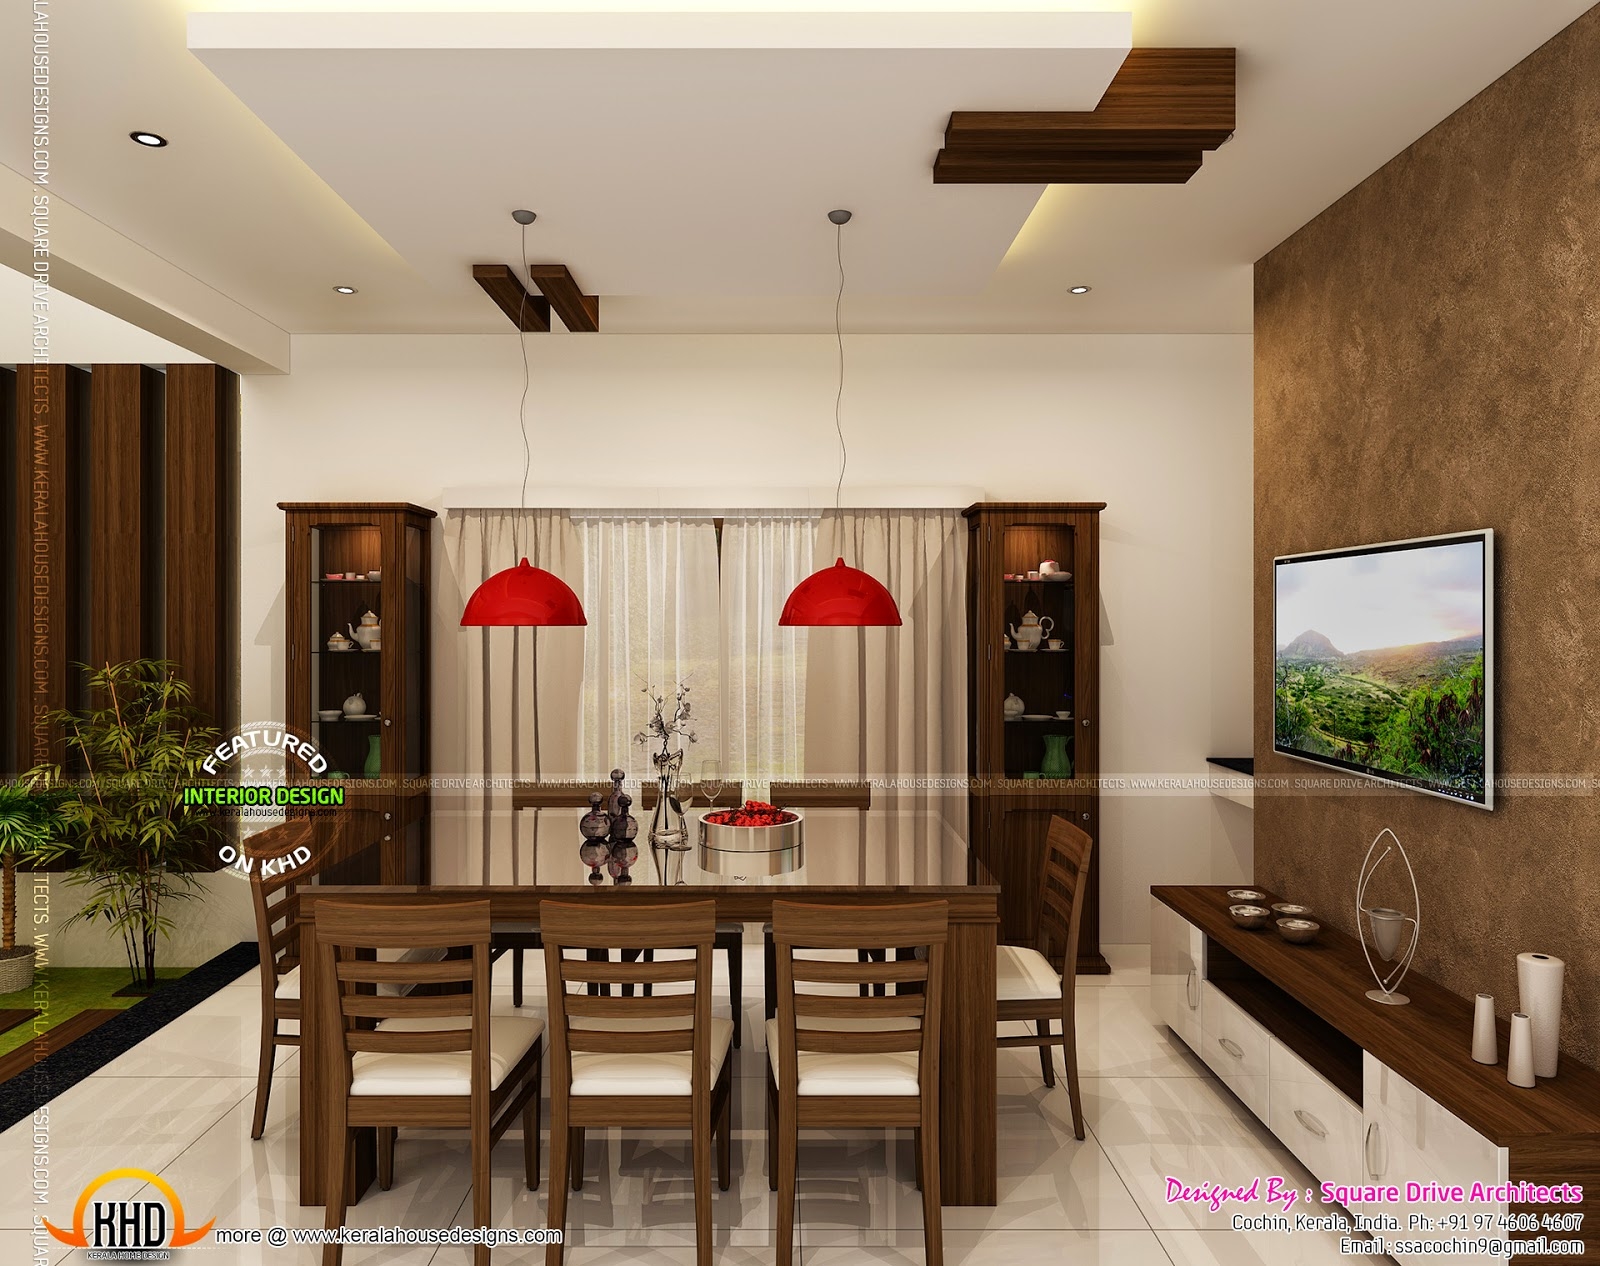 Home interiors designs kerala home design and floor plans for Dining room ideas kerala